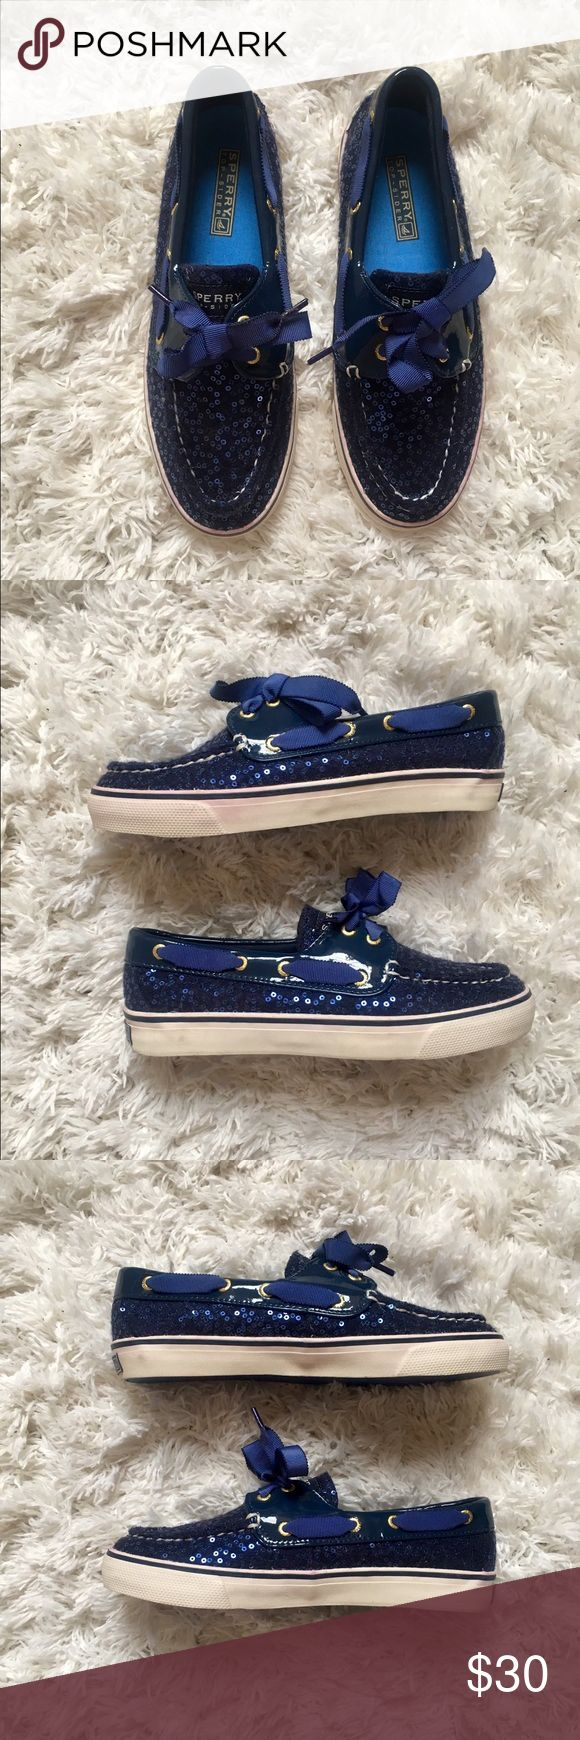 Sperry Bahama Boat Shoe in Navy Sequins, Size 6 ✖️ Sperry Top-Sider Bahama Boat Shoe / Sneaker                              ✖️ Navy / Sequins                                                                         ✖️ Size 6                                                                                                                                                               ✖️ Never been worn, but no tags because they were purchased at a sample sale. Great condition. Bahamas can run…